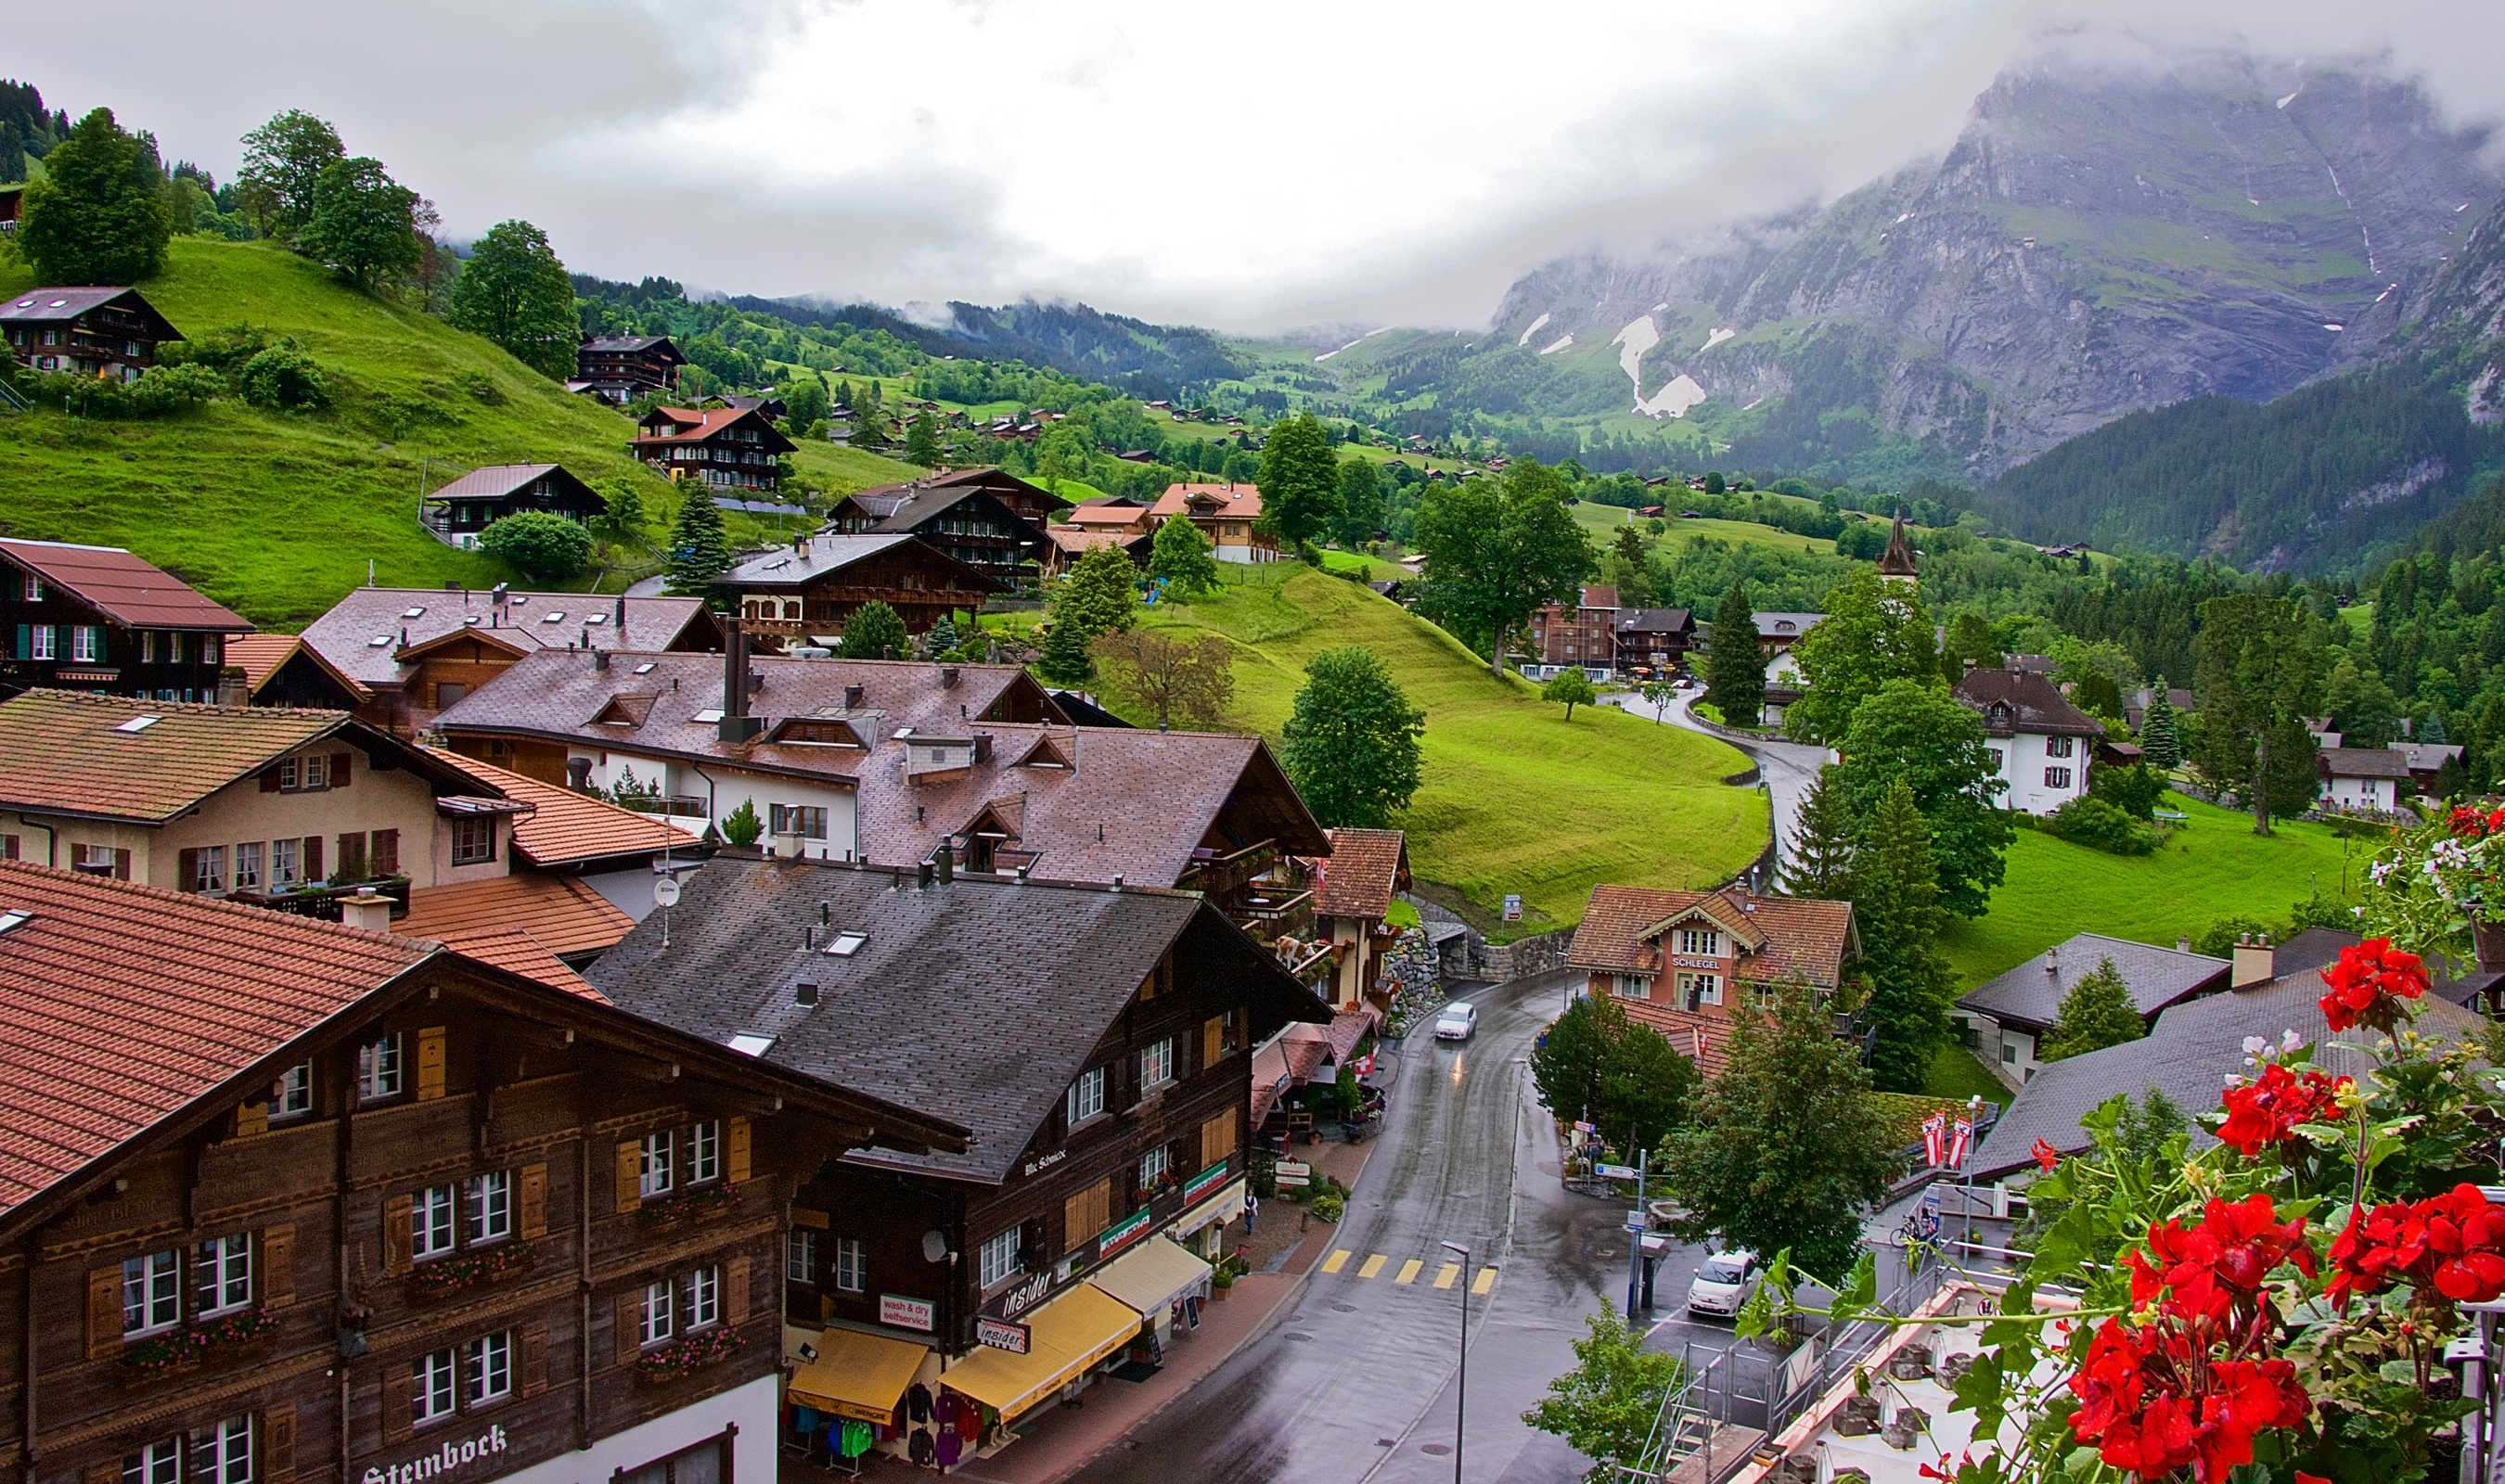 Grindelwald was first mentioned in 1146 as Grindelwalt The oldest traces of a settlement in the area are scattered neolithic tools which have been discovered around